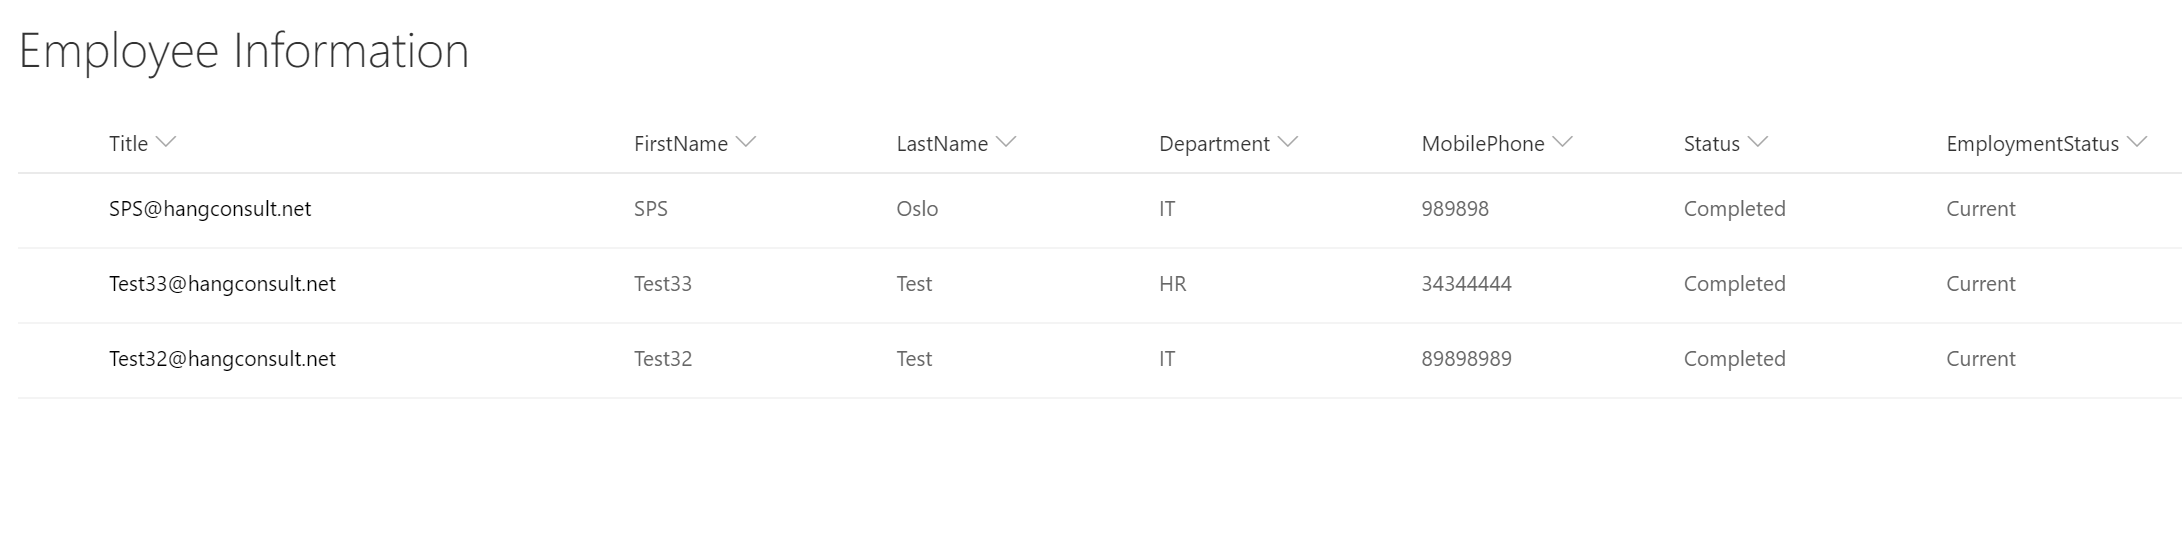 Office365 User Onboarding – MS Forms, Flow, SharePoint Online and